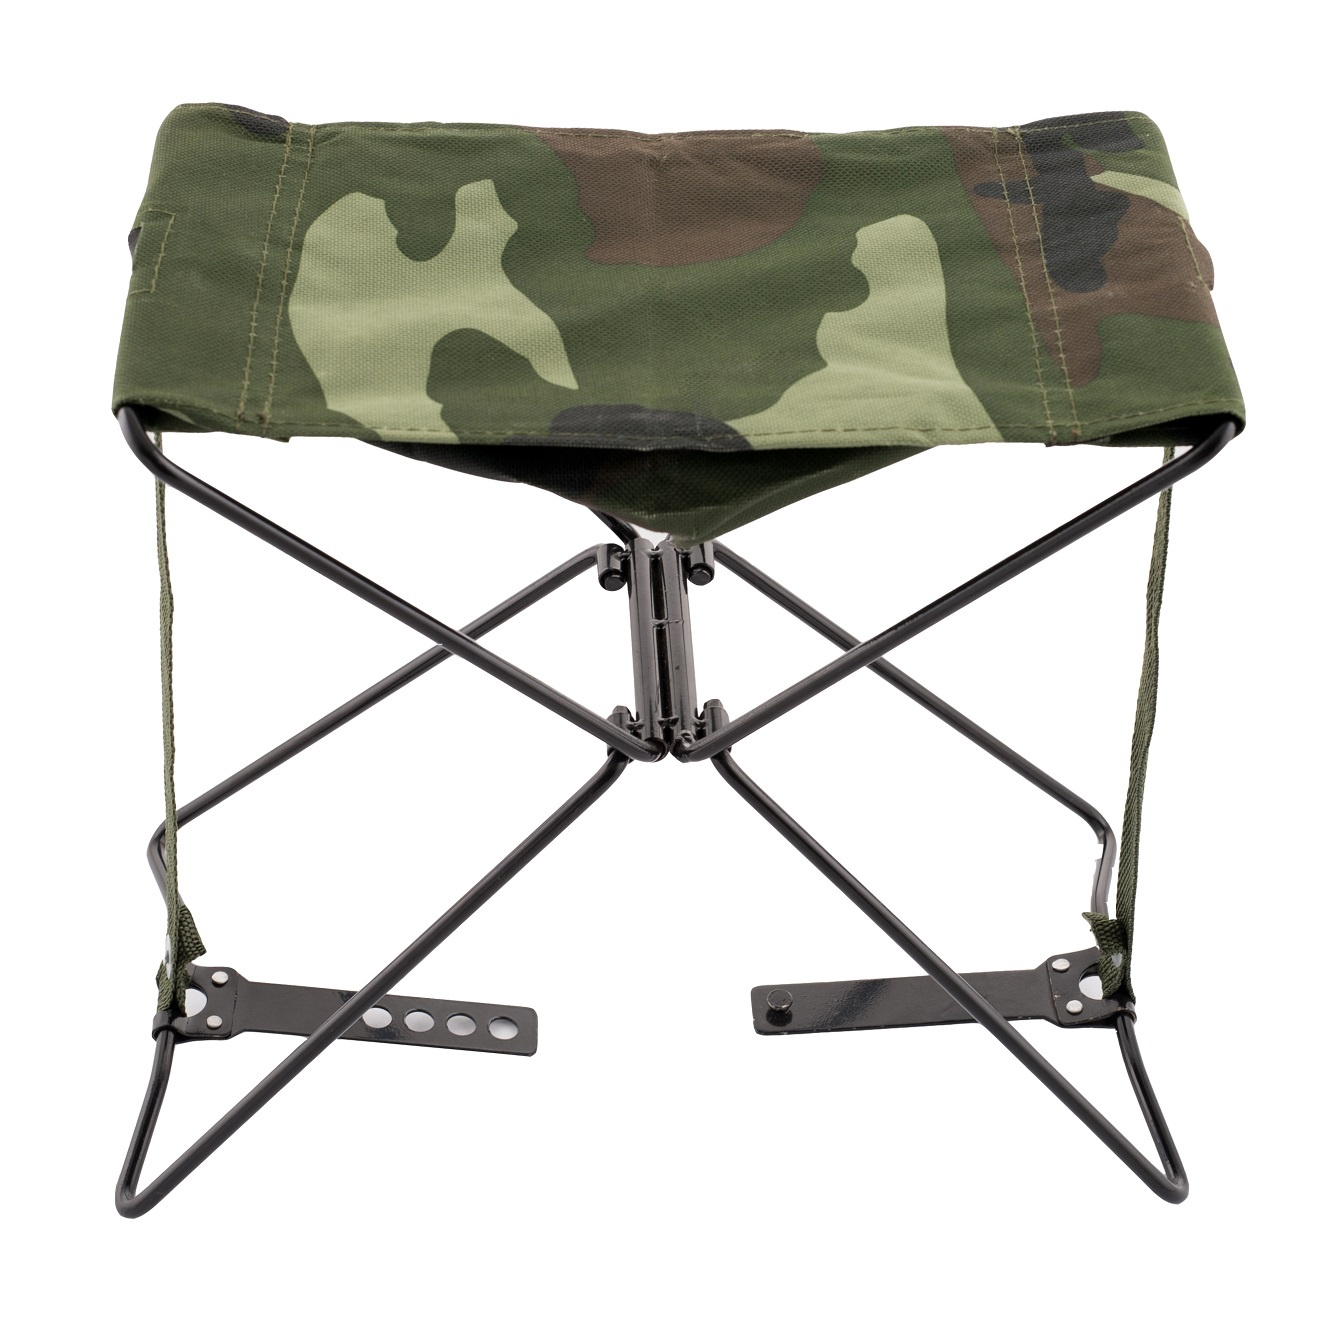 CAMP FURNITURE